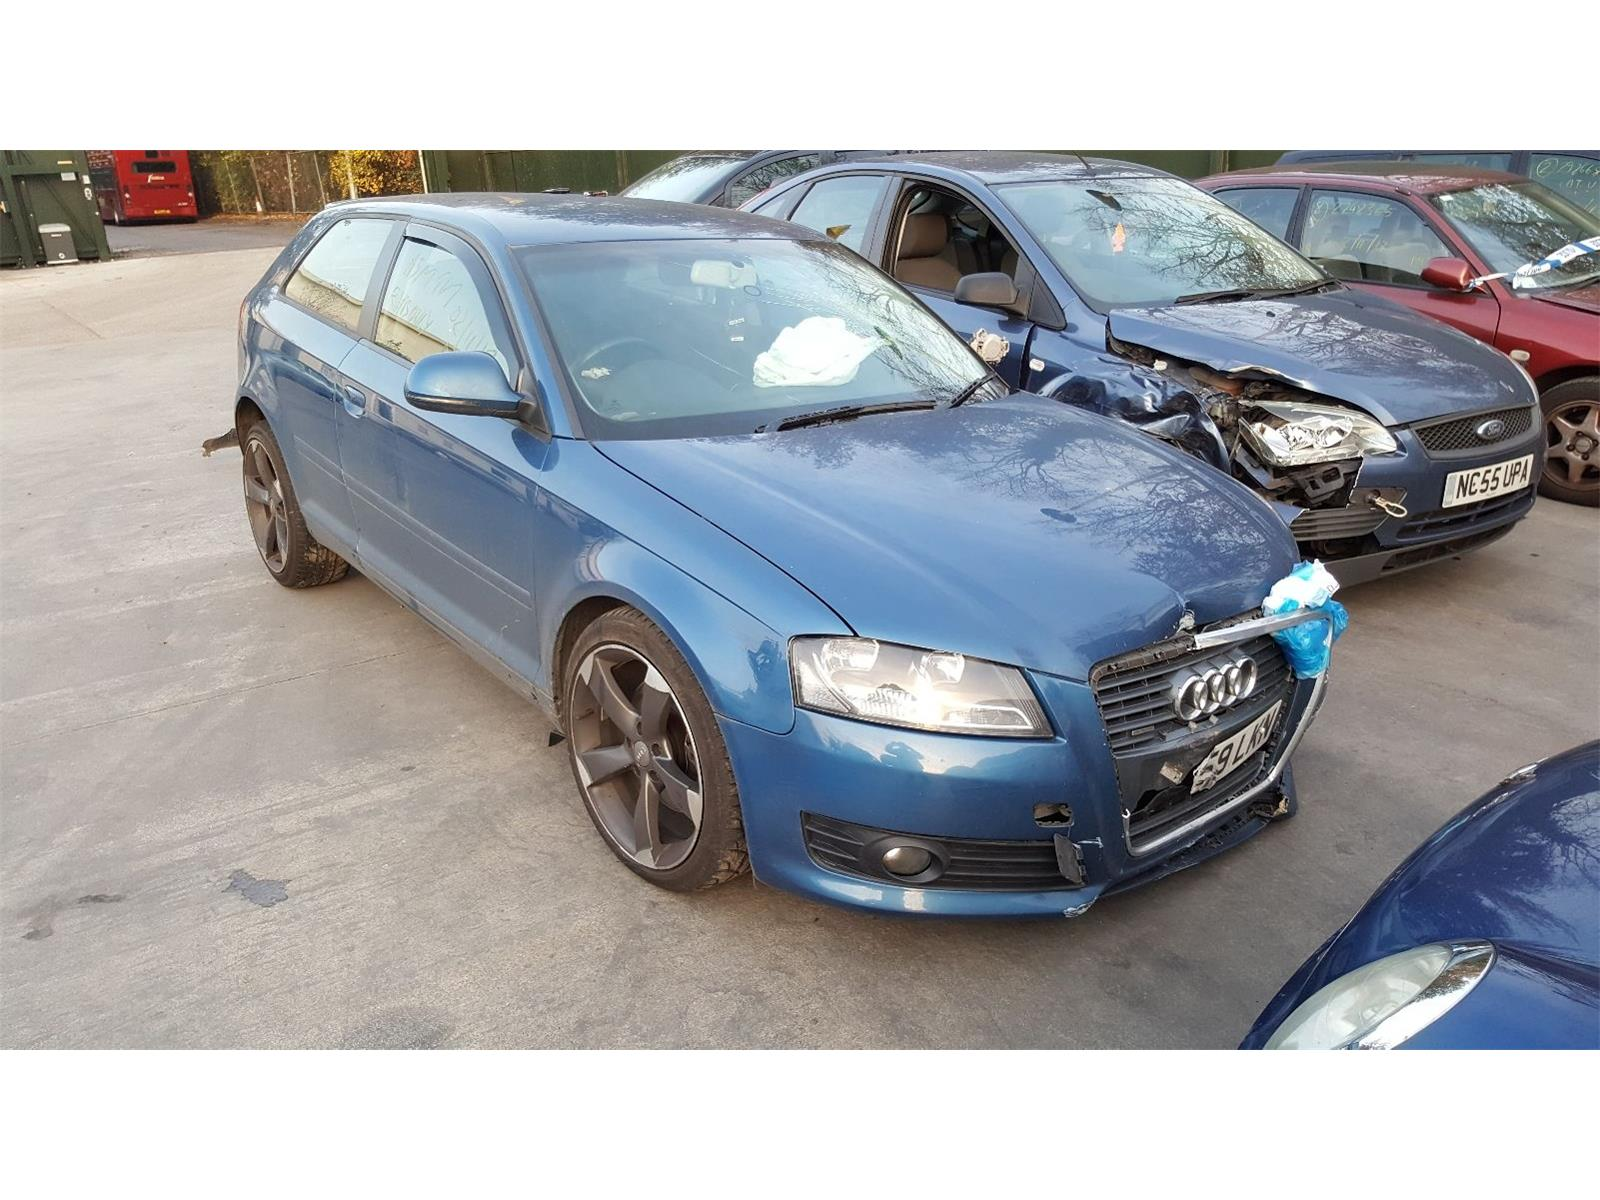 2009 audi a3 2008 to 2013 quattro sport 4wd 3 door hatchback diesel rh breakers asm autos co uk Audi A3 Owner Manual Audi A3 Hatchback